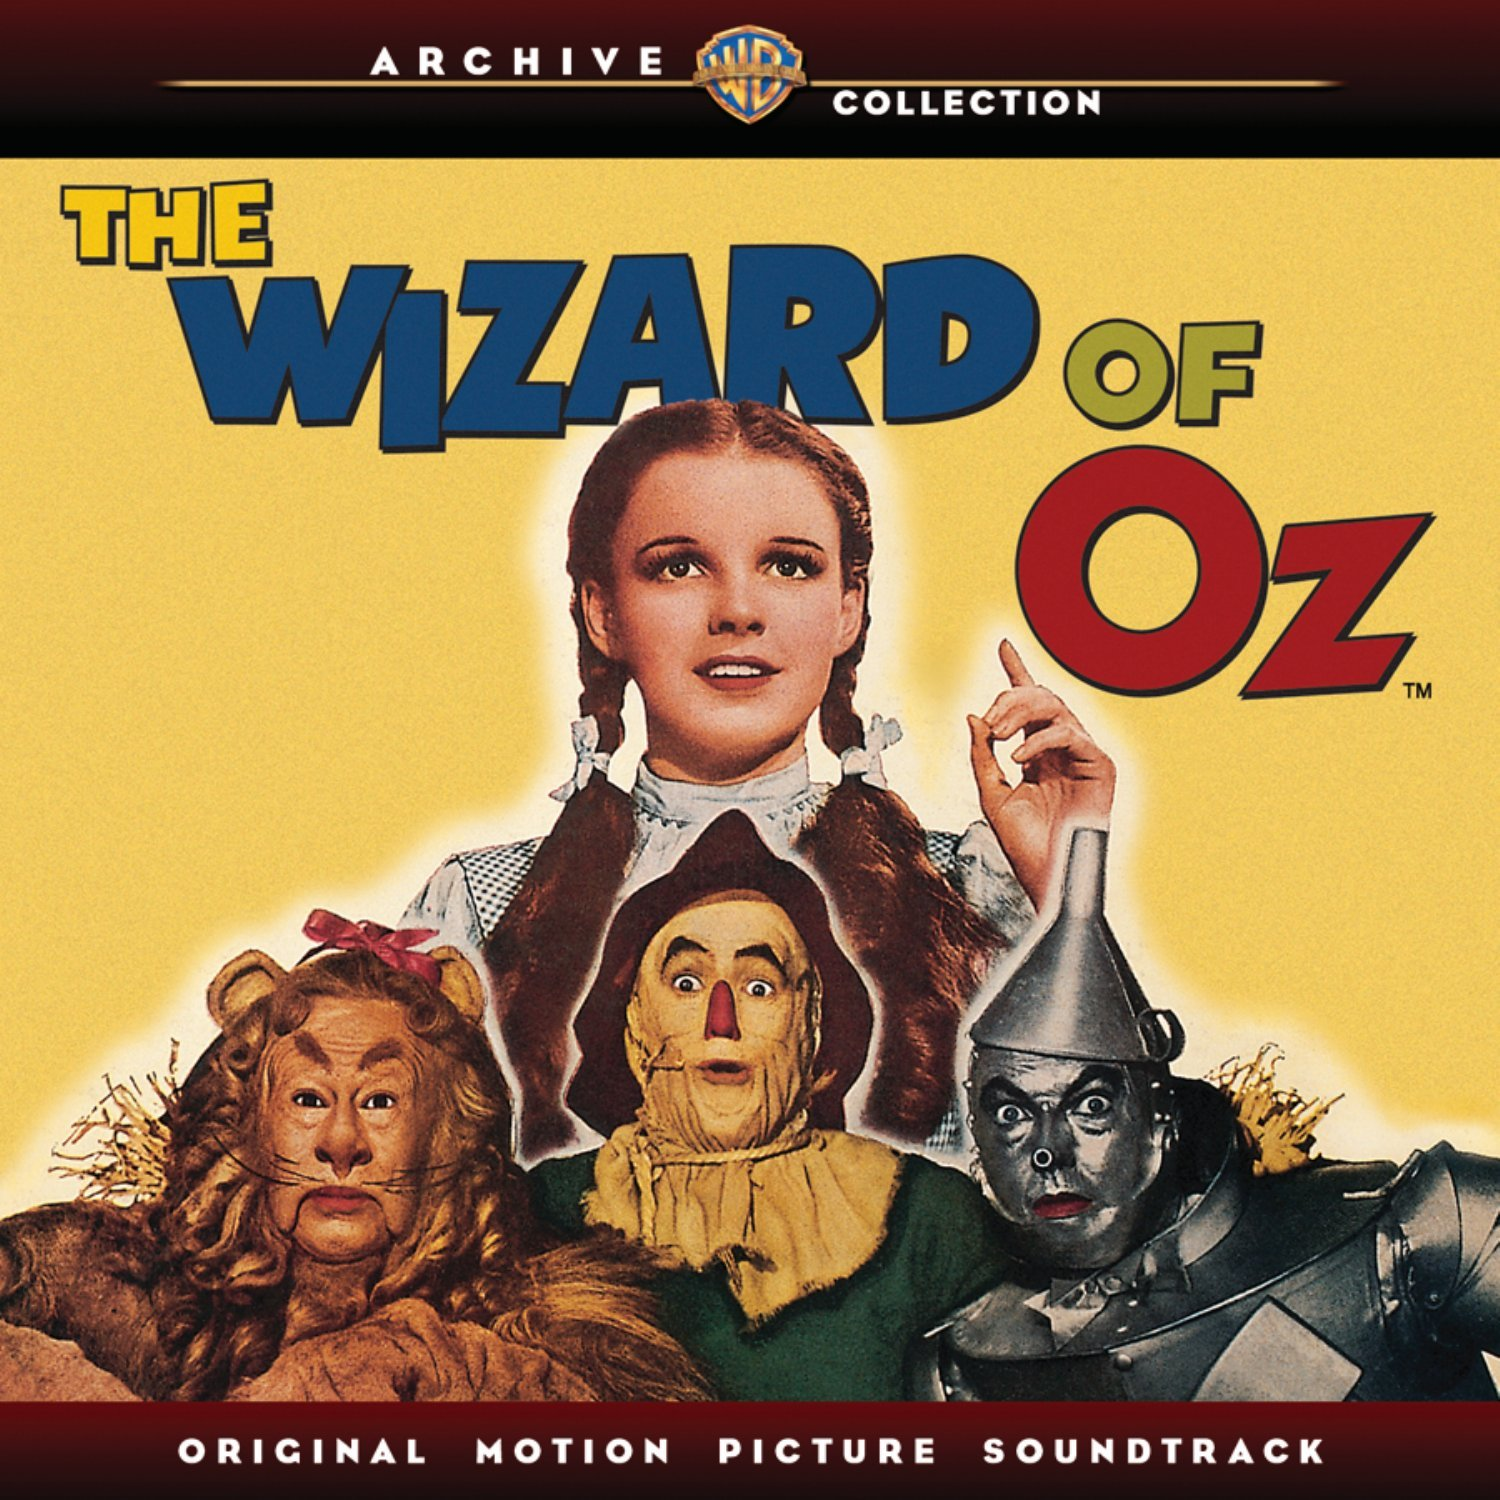 The Wizard Of Oz: Original Motion Picture Soundtrack